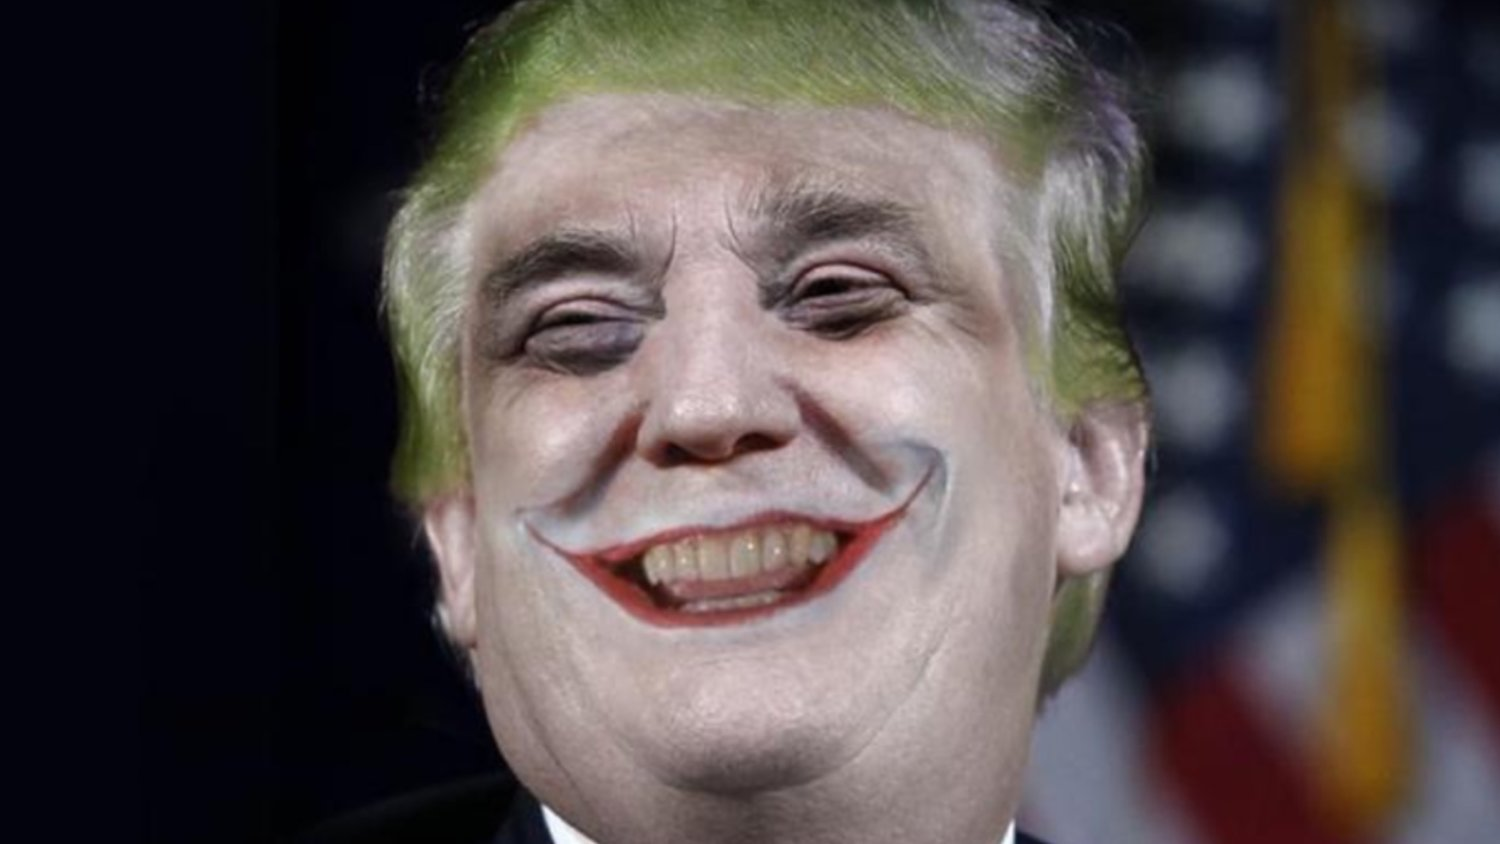 Mark Hamill Is Back as The Joker as He Reads Donald Trumps Wiretap Tweet